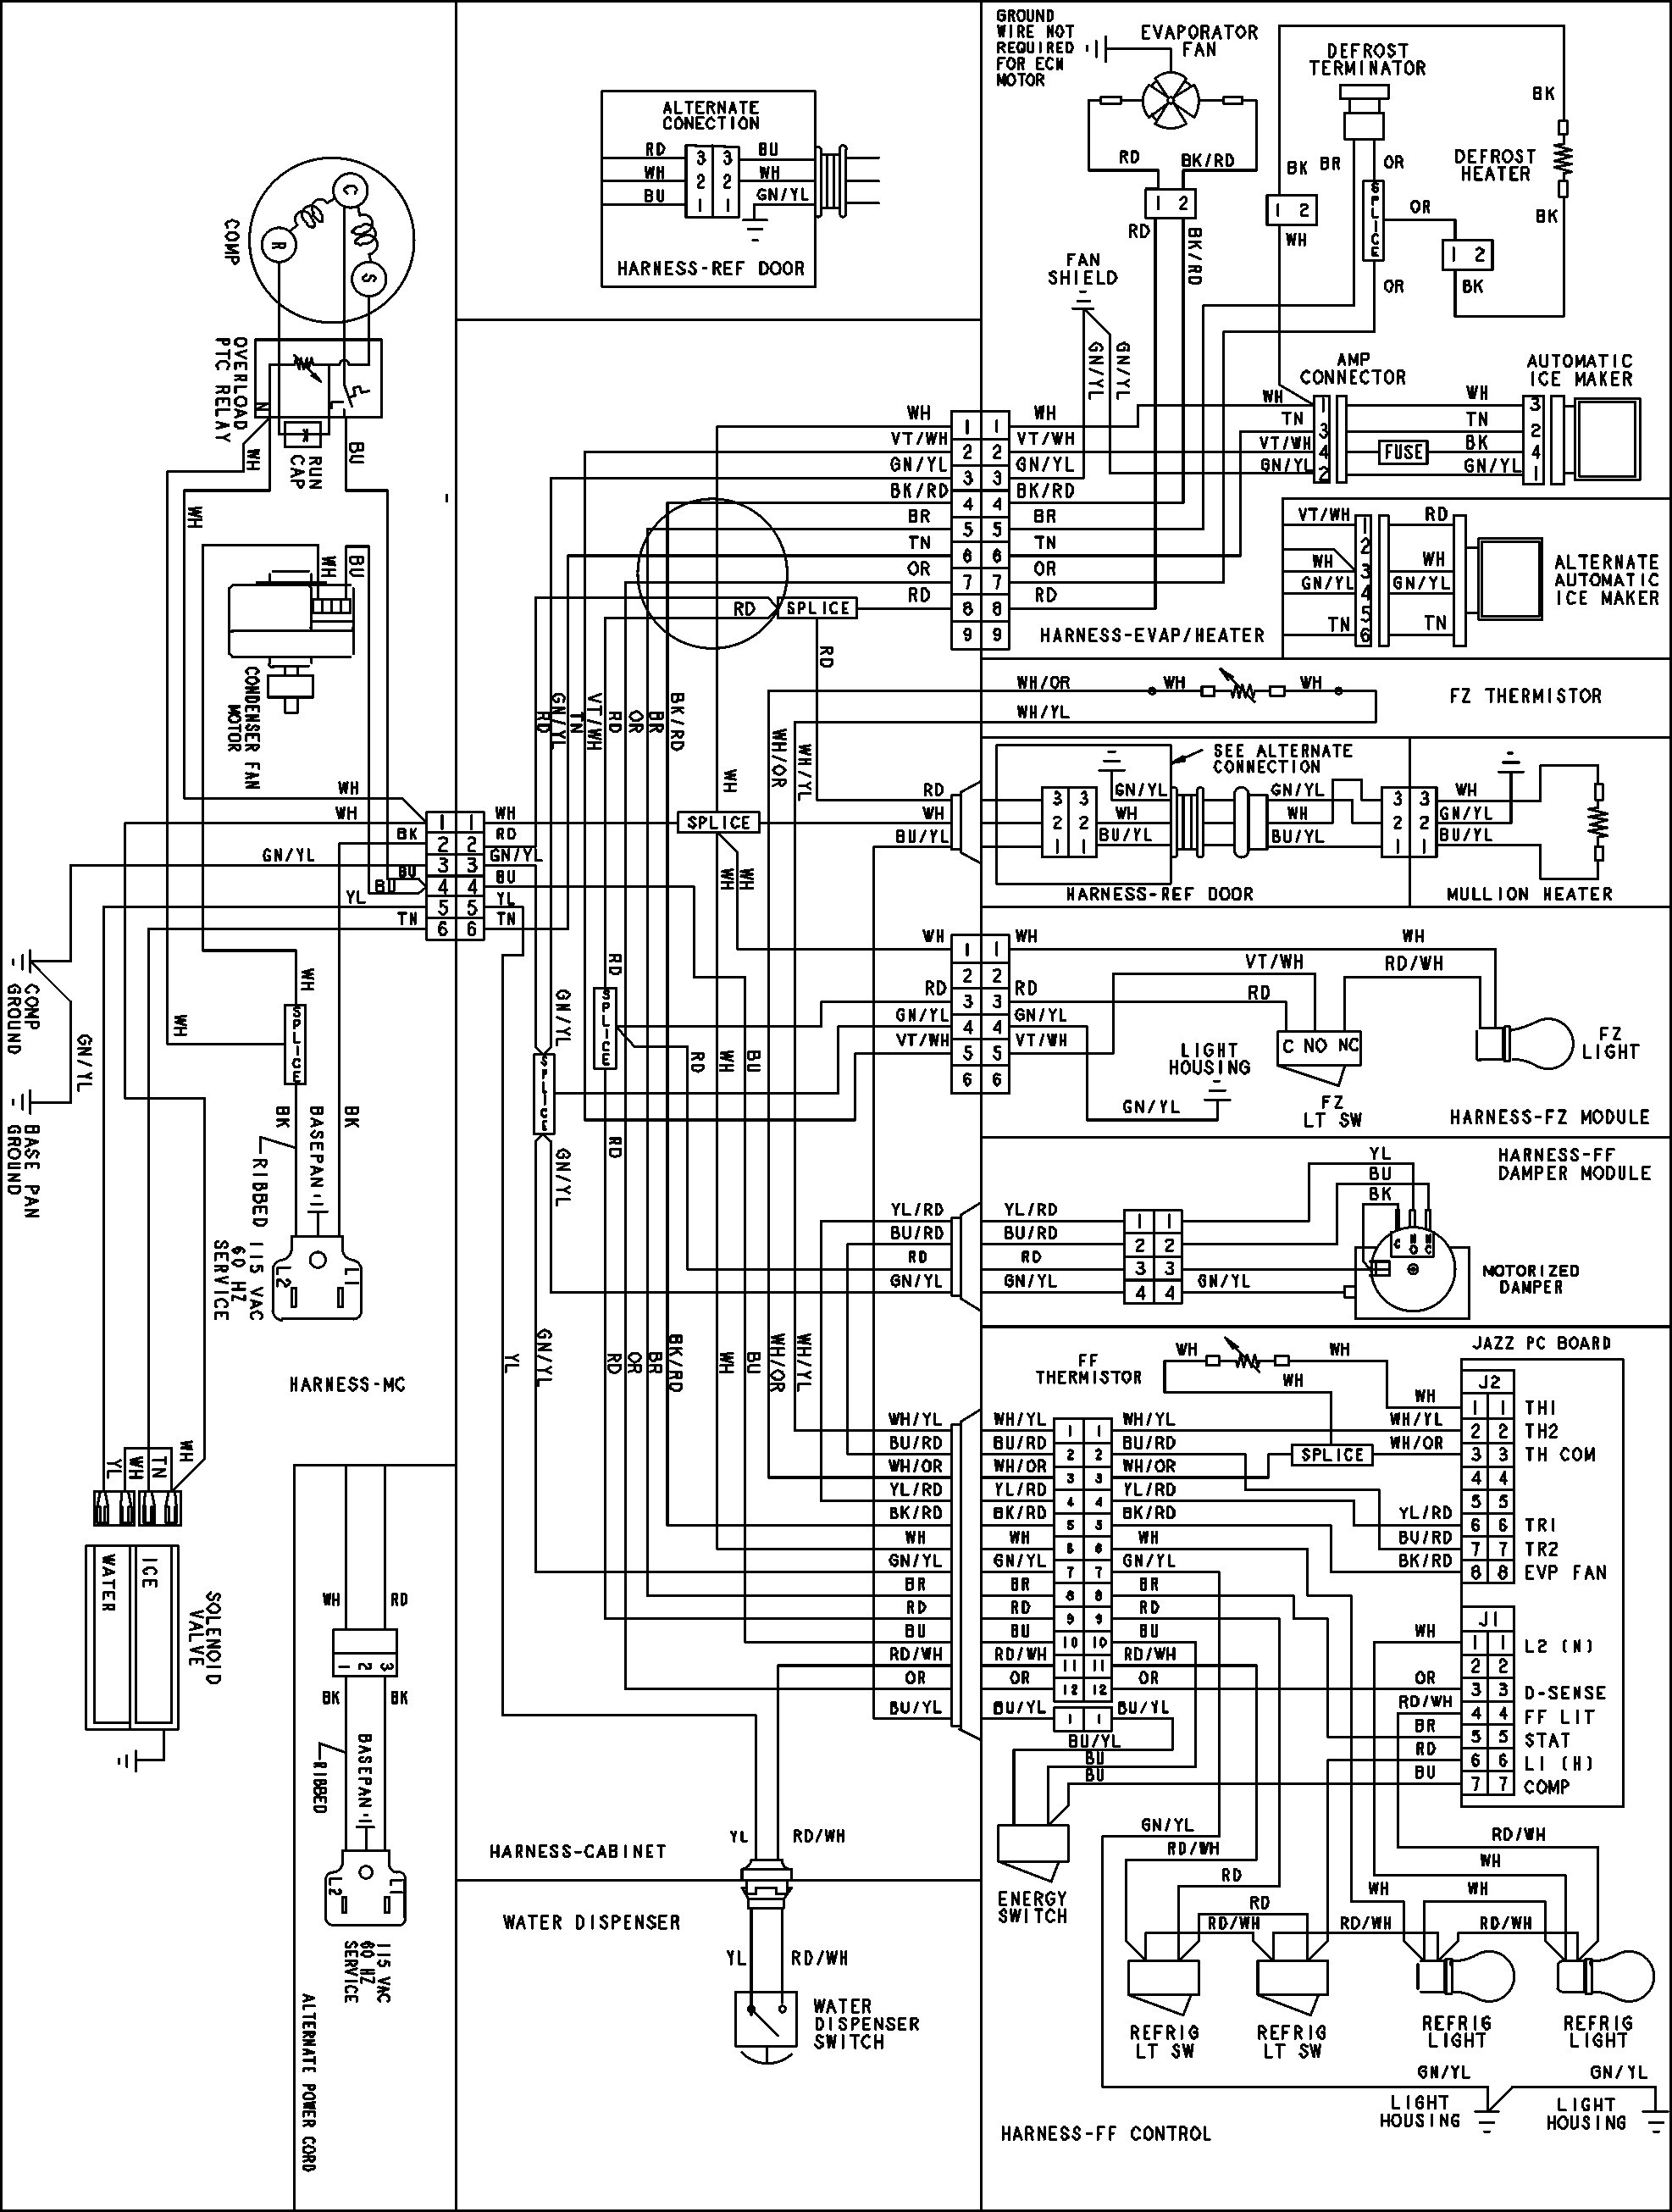 Ddec V Ecm Wiring | Avecdd Unix Jake Ke Wiring Diagram on